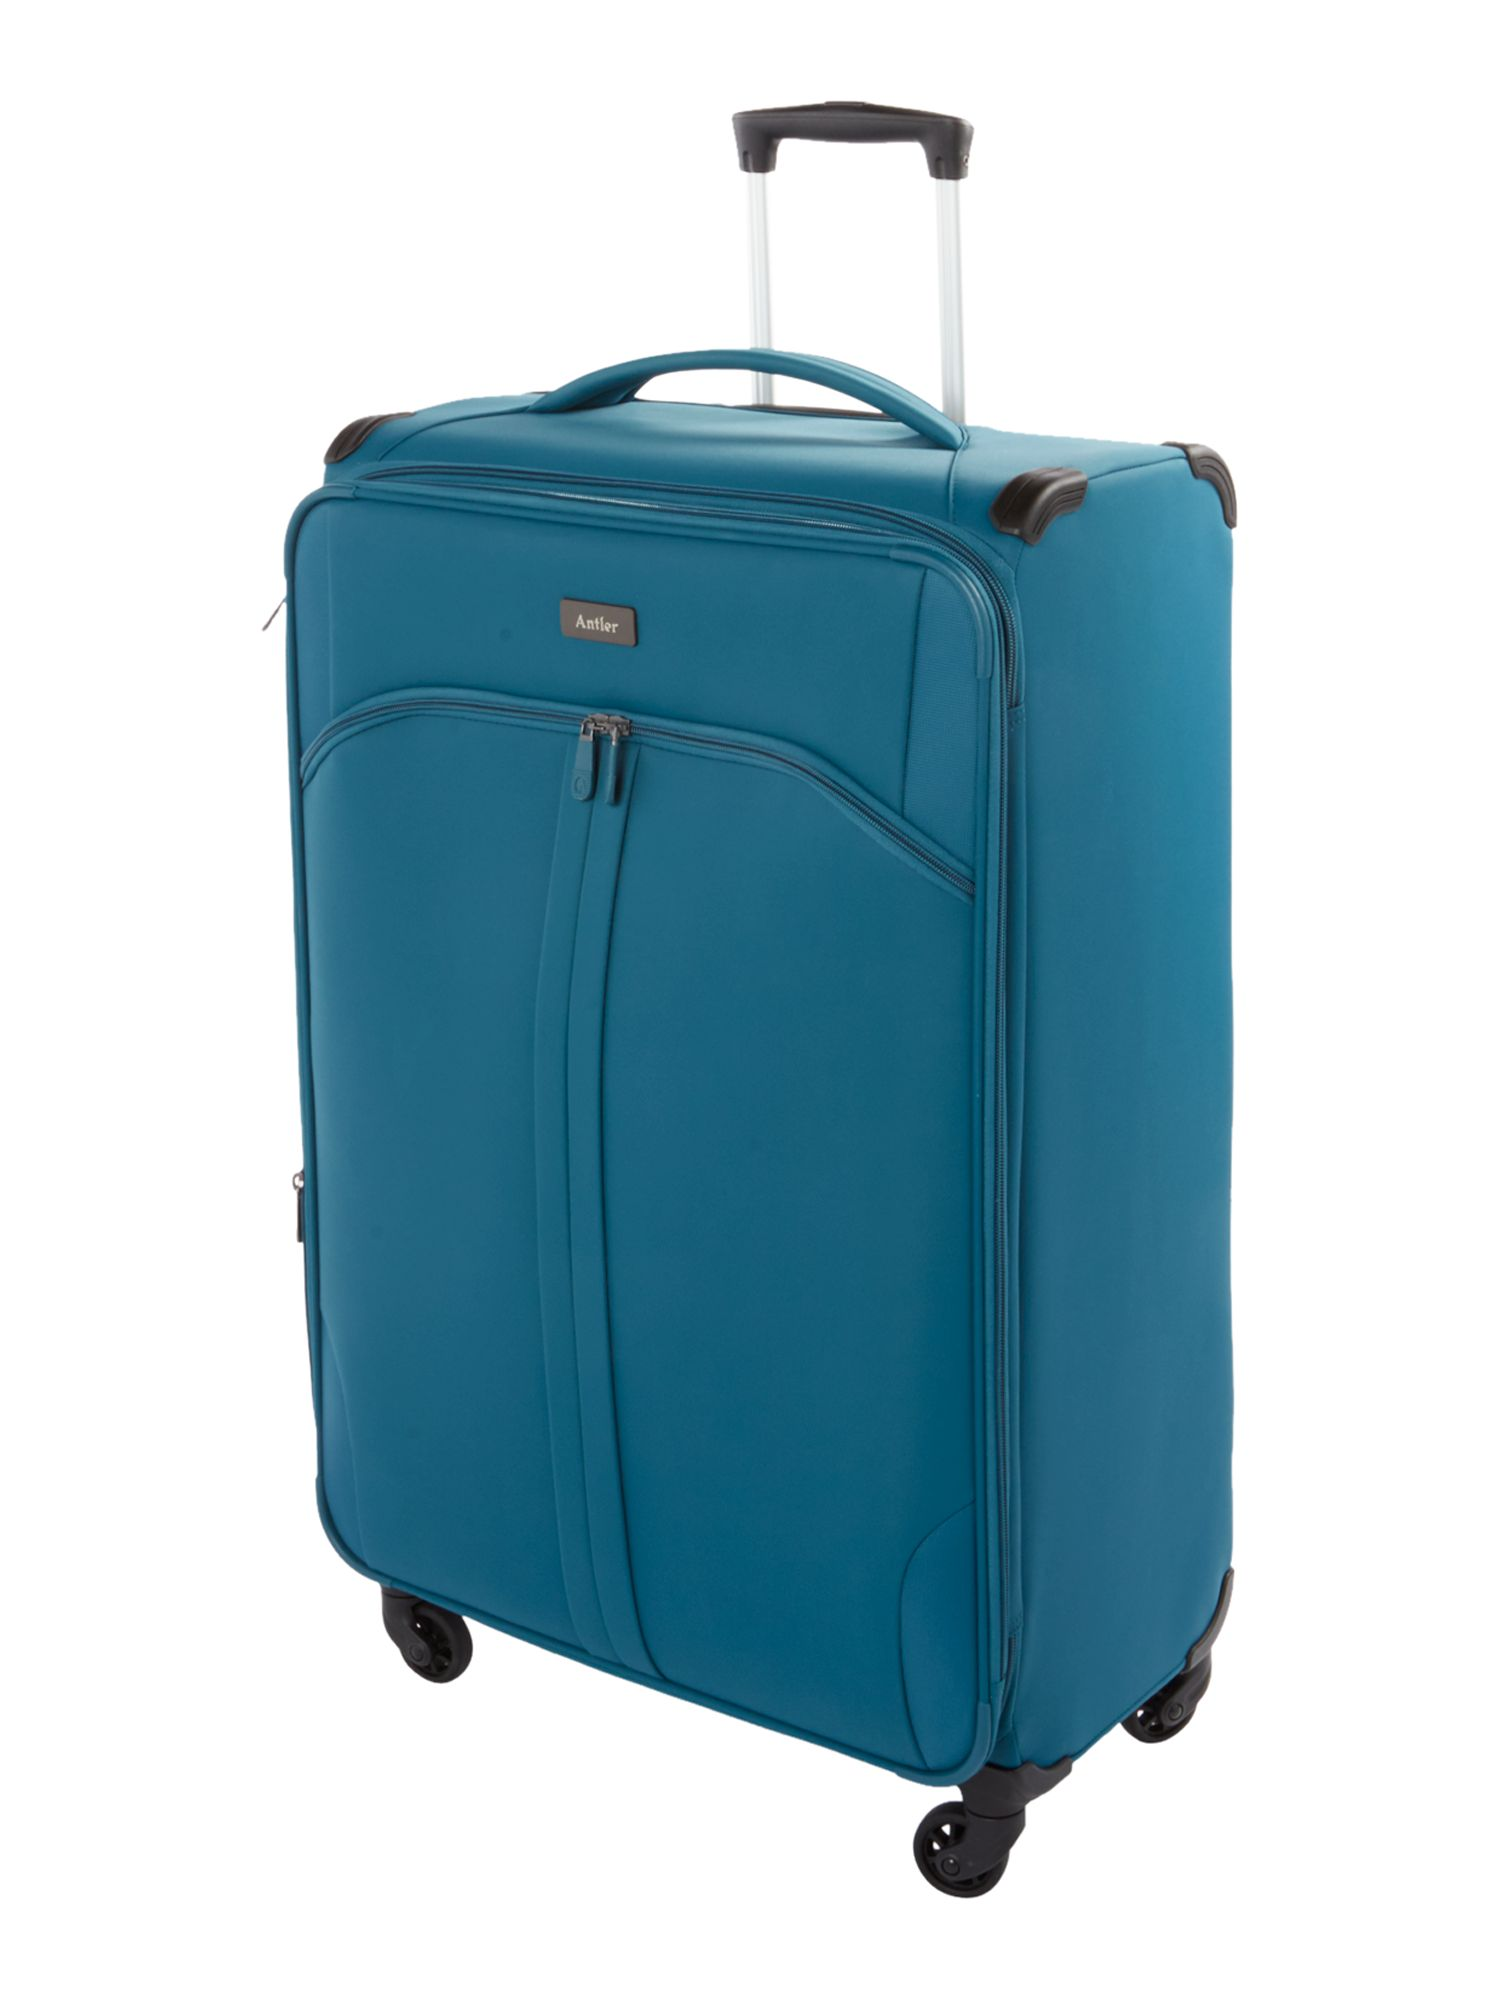 Antler Aire teal 4 wheel large suitcase Teal